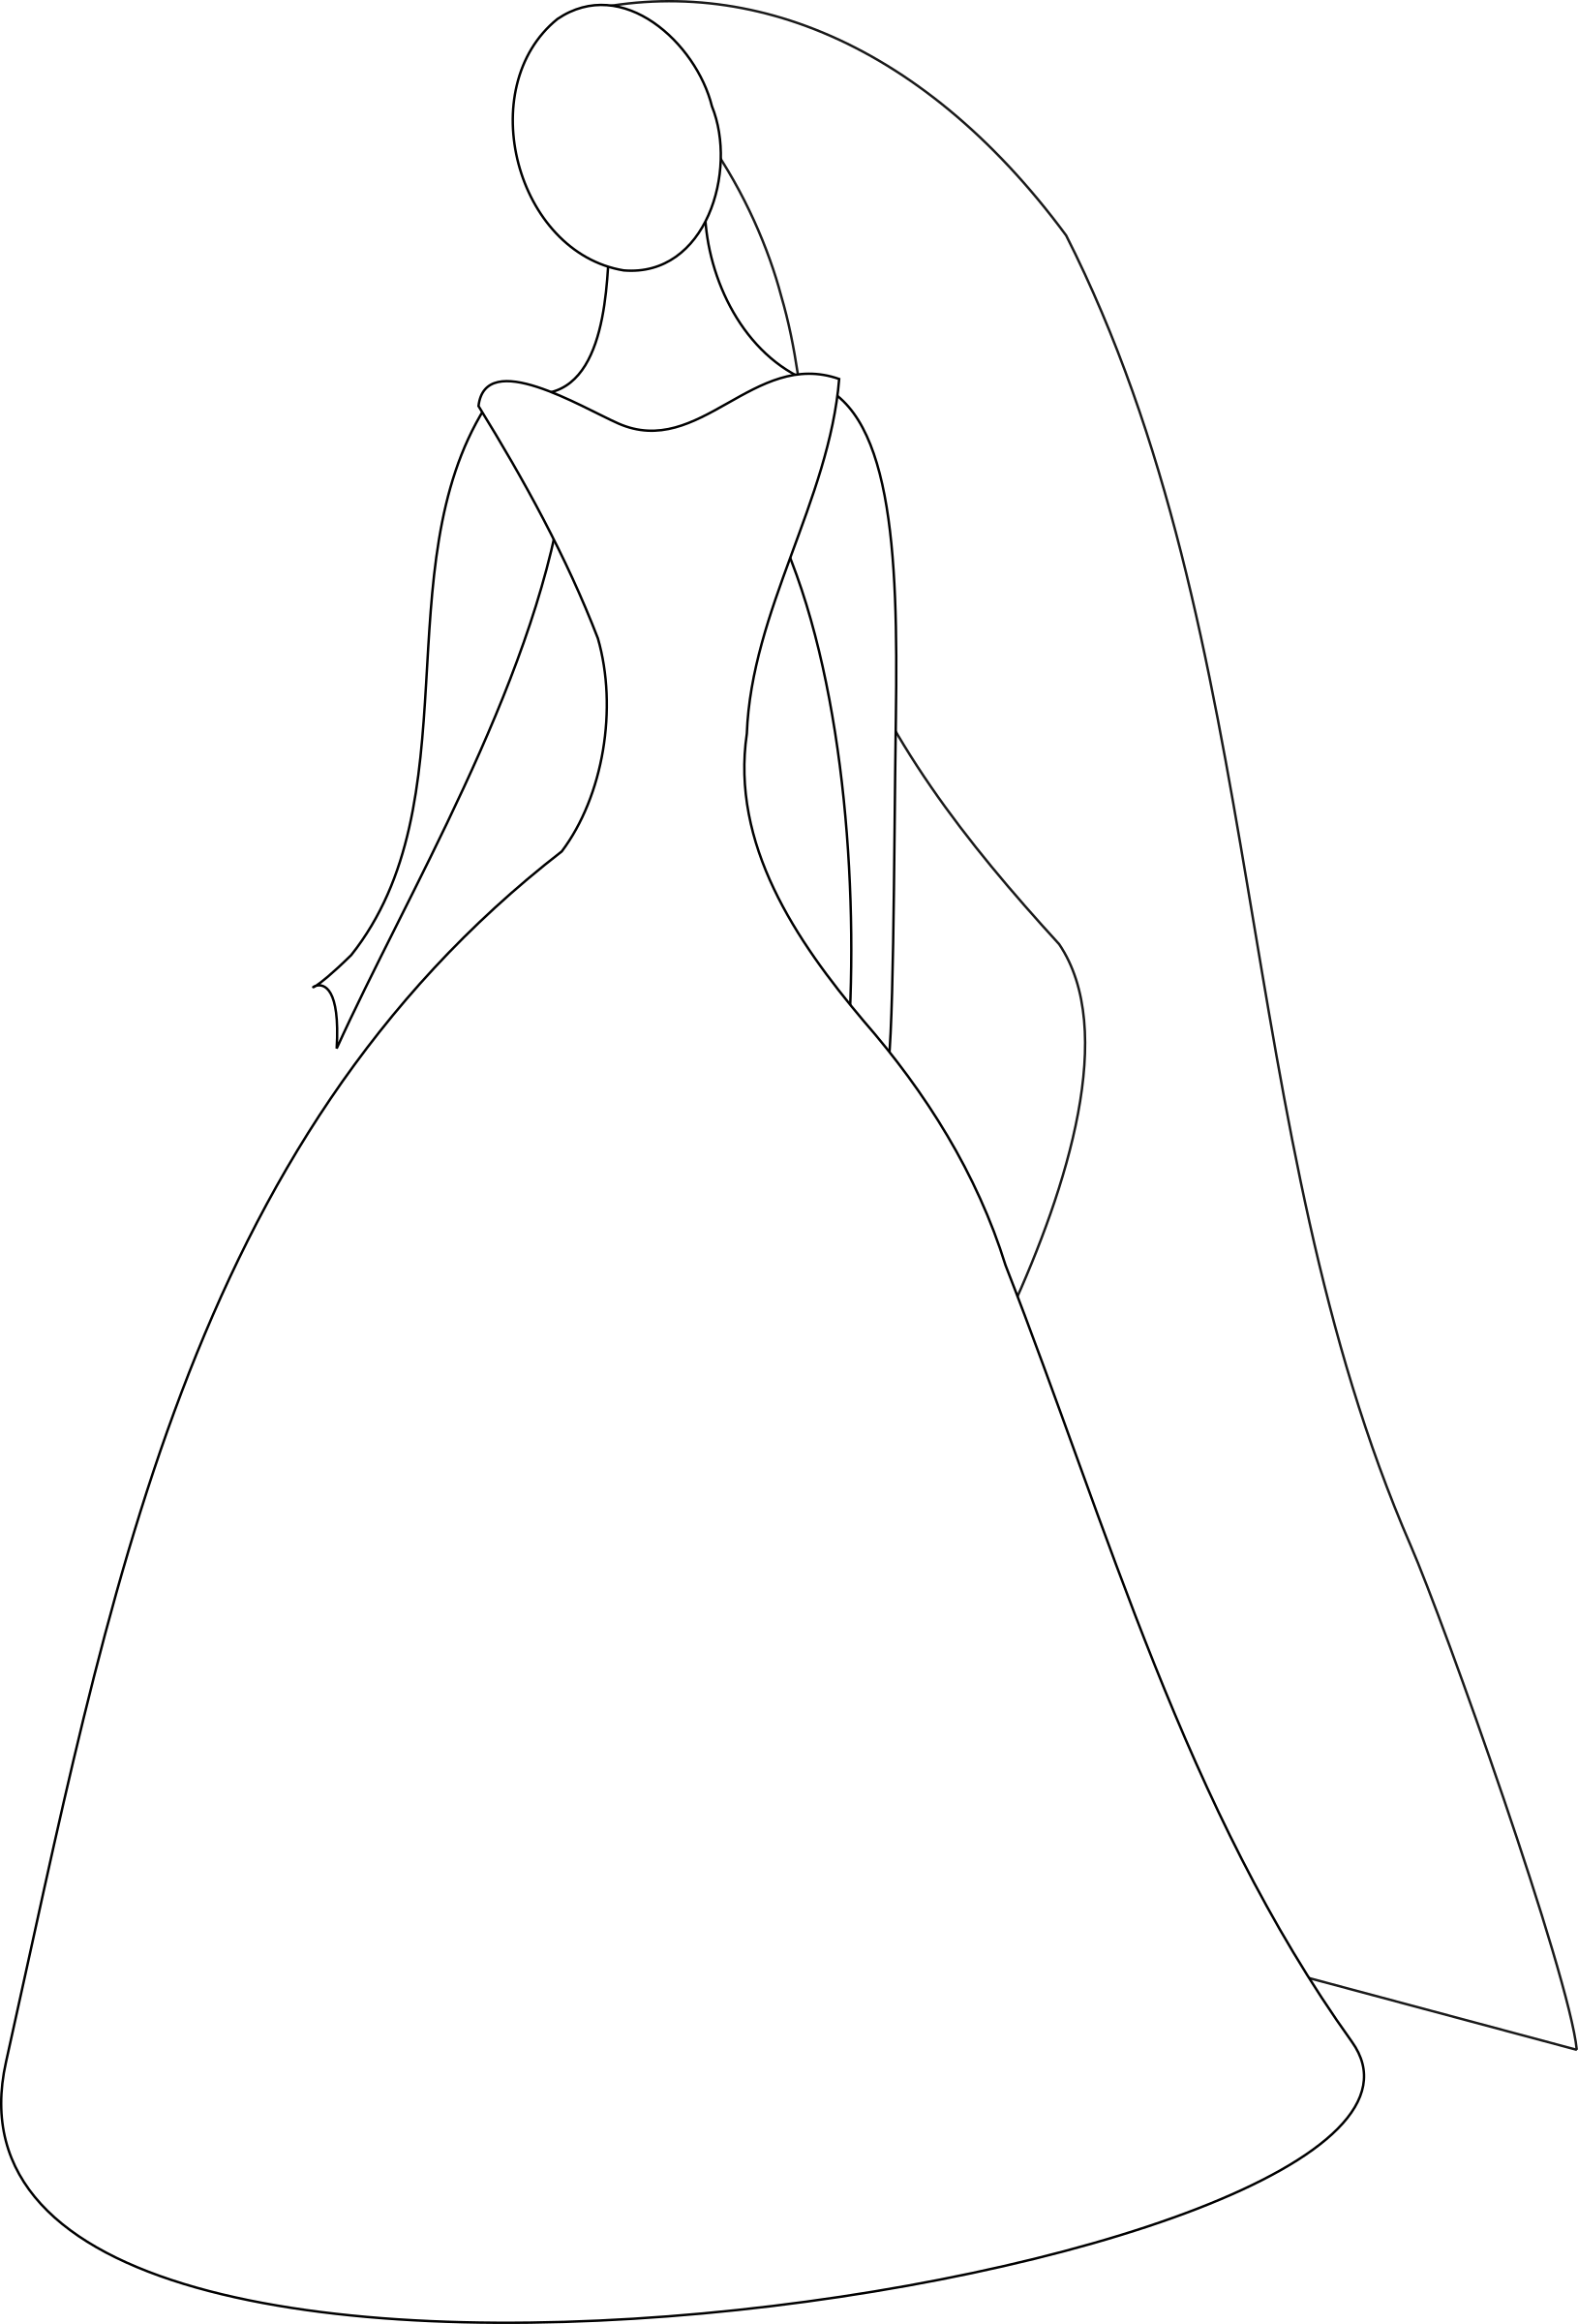 bridal silhouette clip art at getdrawings com free for personal rh getdrawings com wedding dress clipart black and white wedding dress clipart png